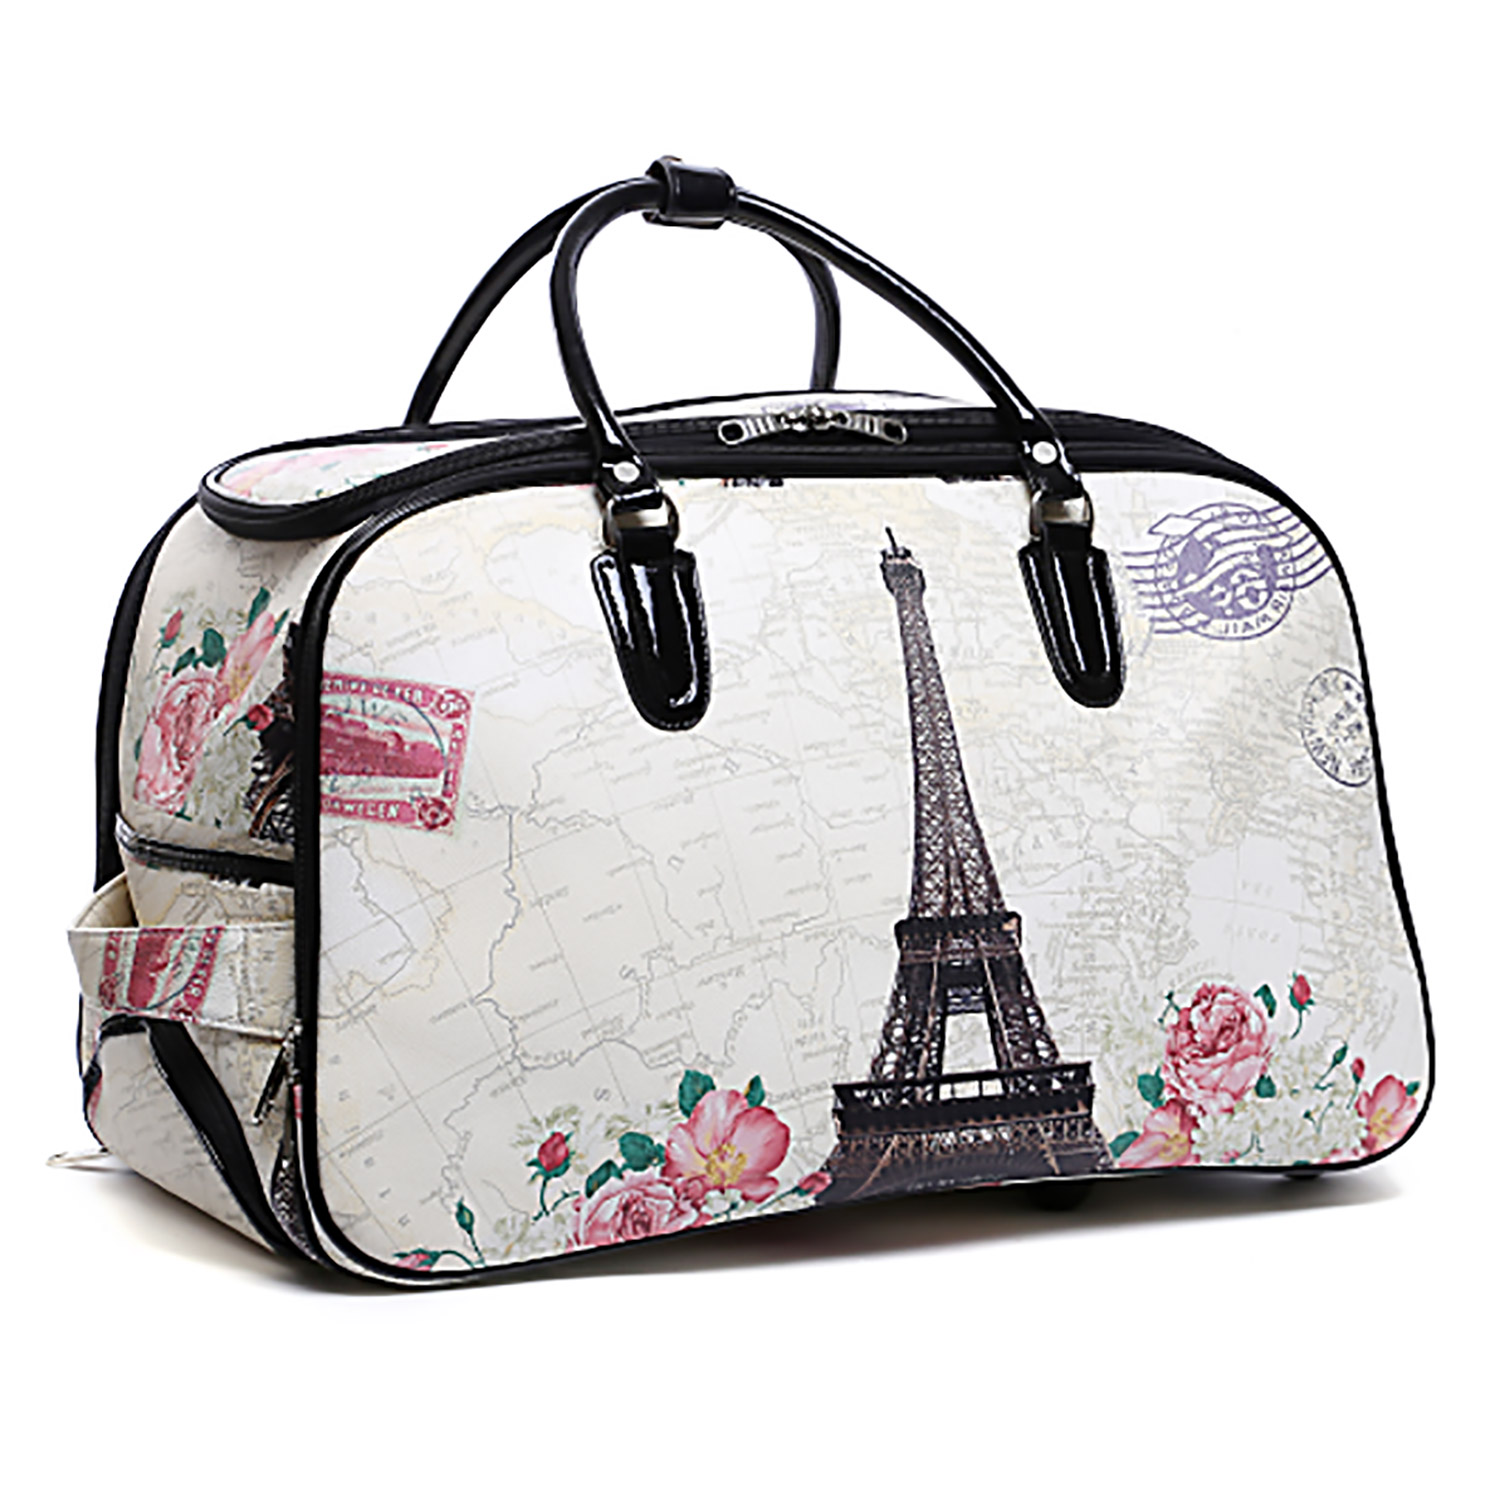 a9fffa84802 Wholesale Duffle Bag now available at Wholesale Central - Items 1 - 40